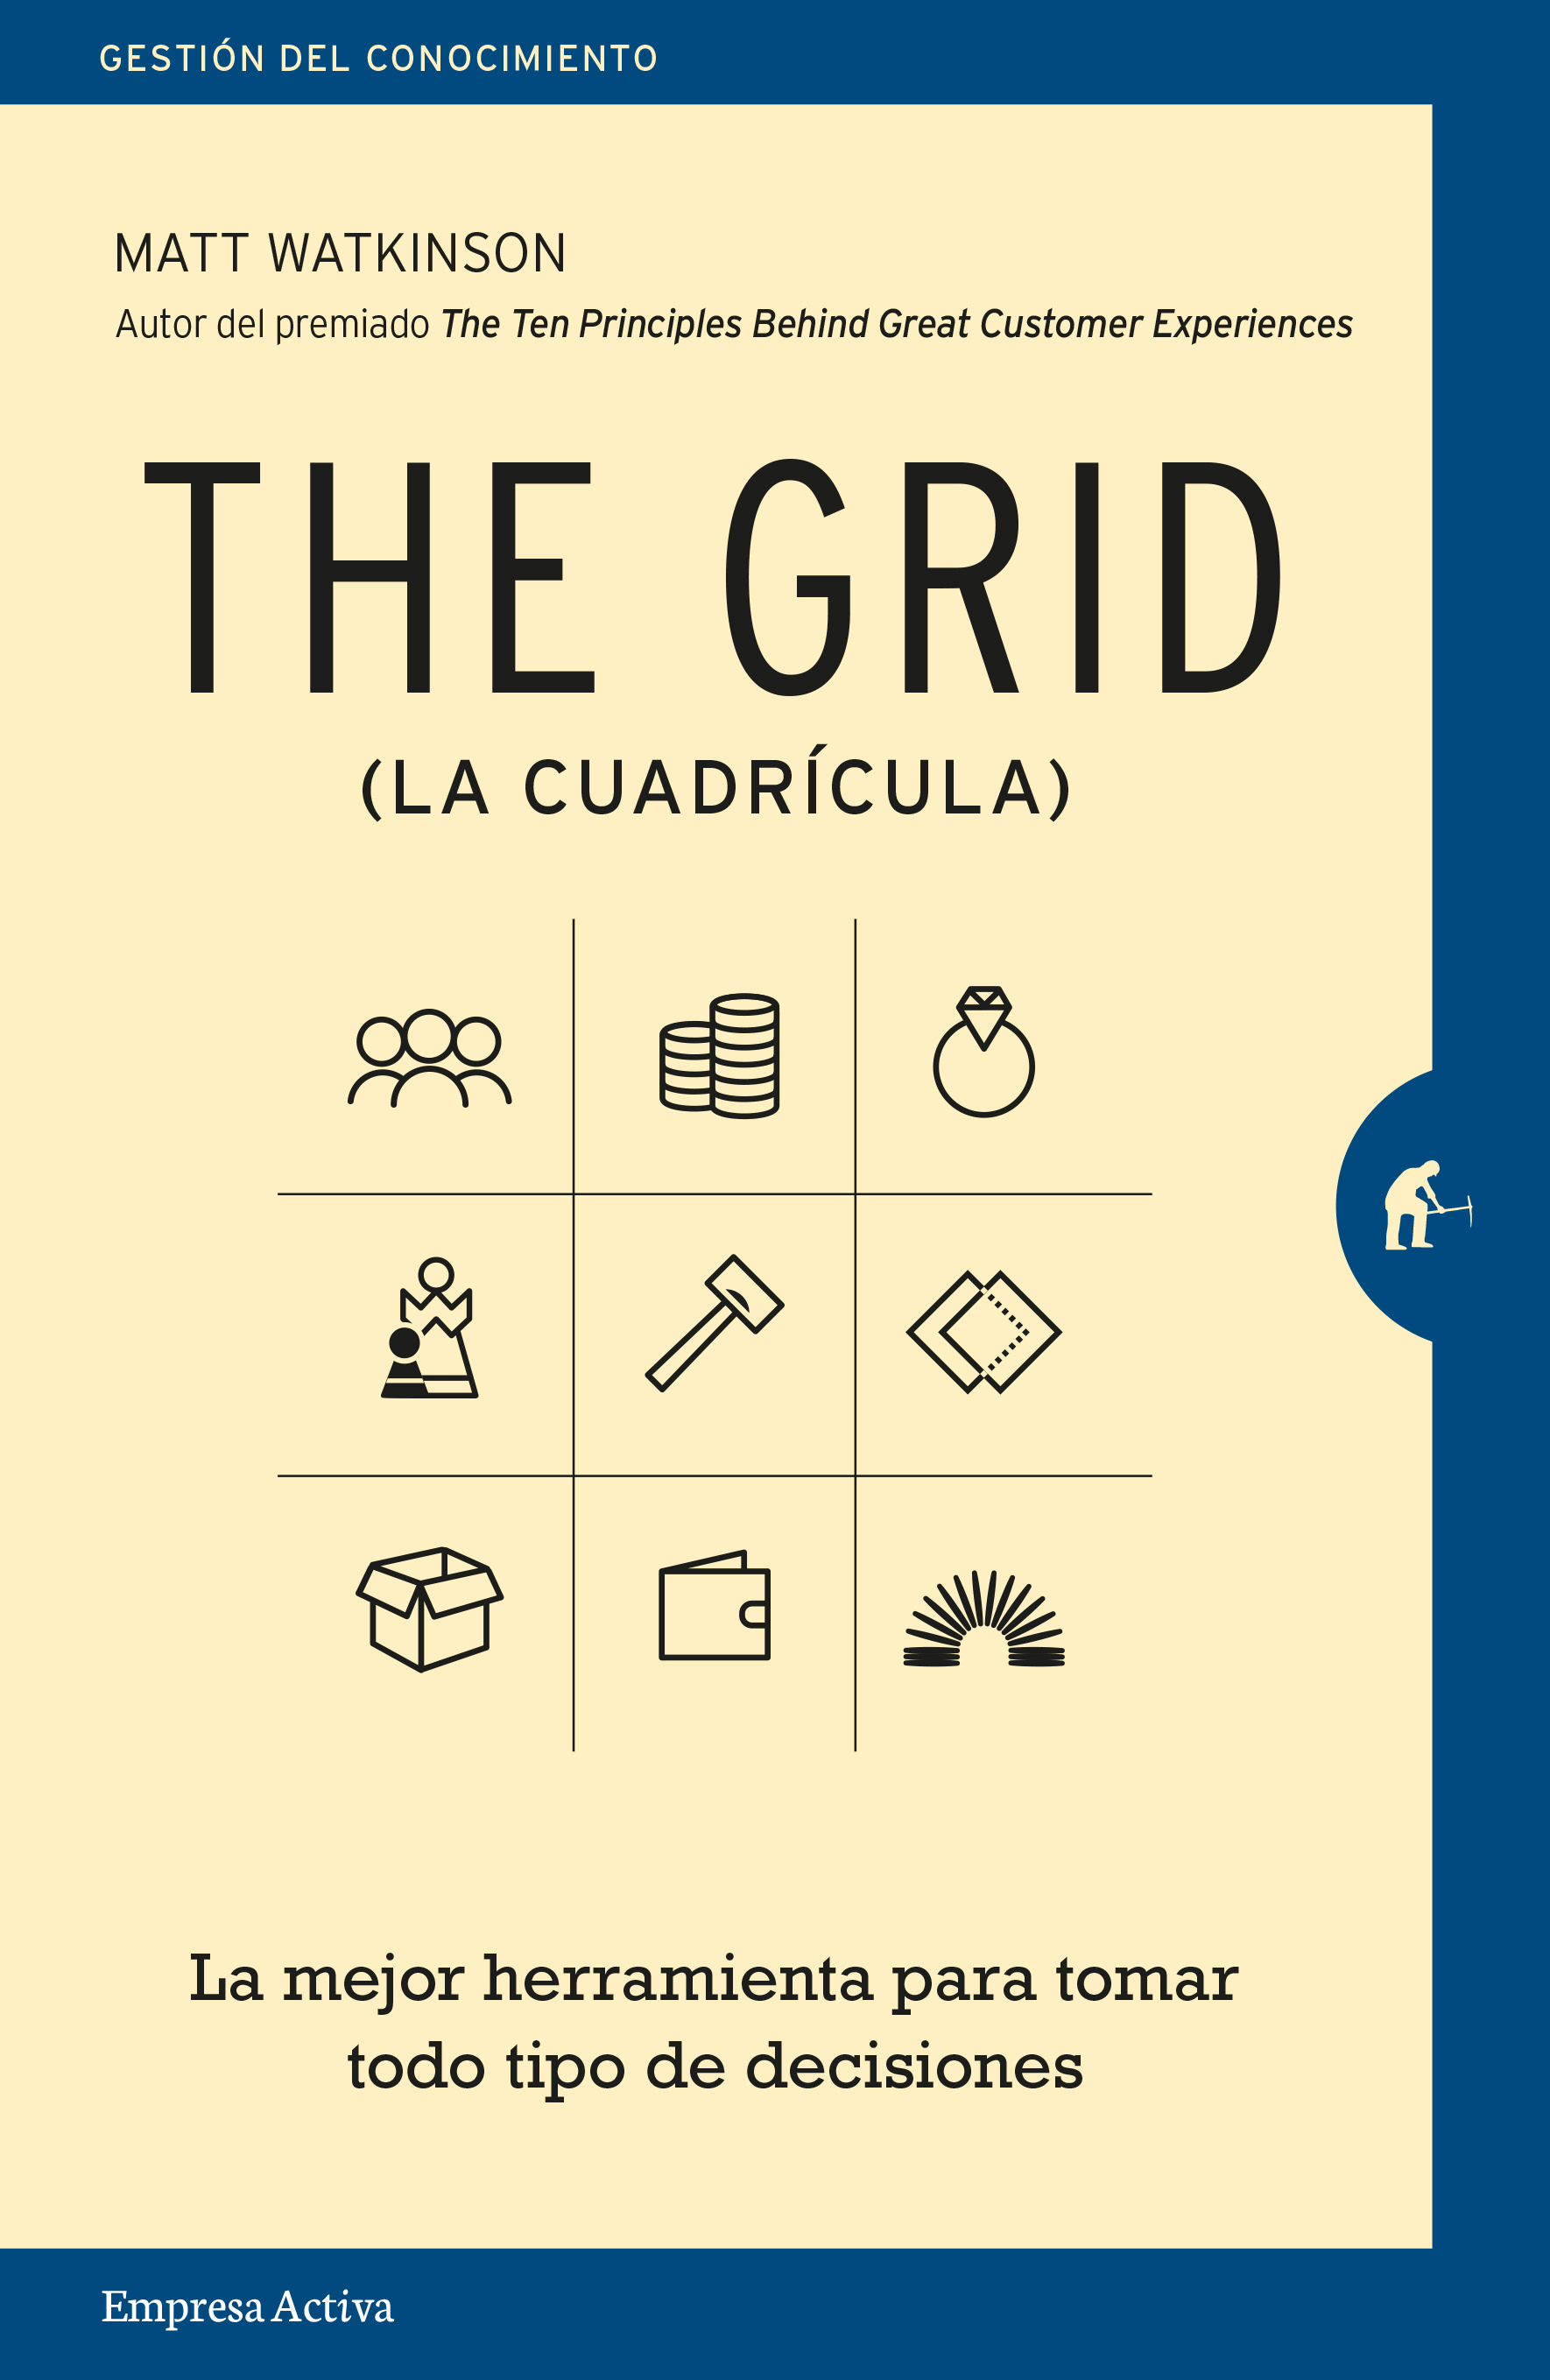 The grid - La cuadrícula